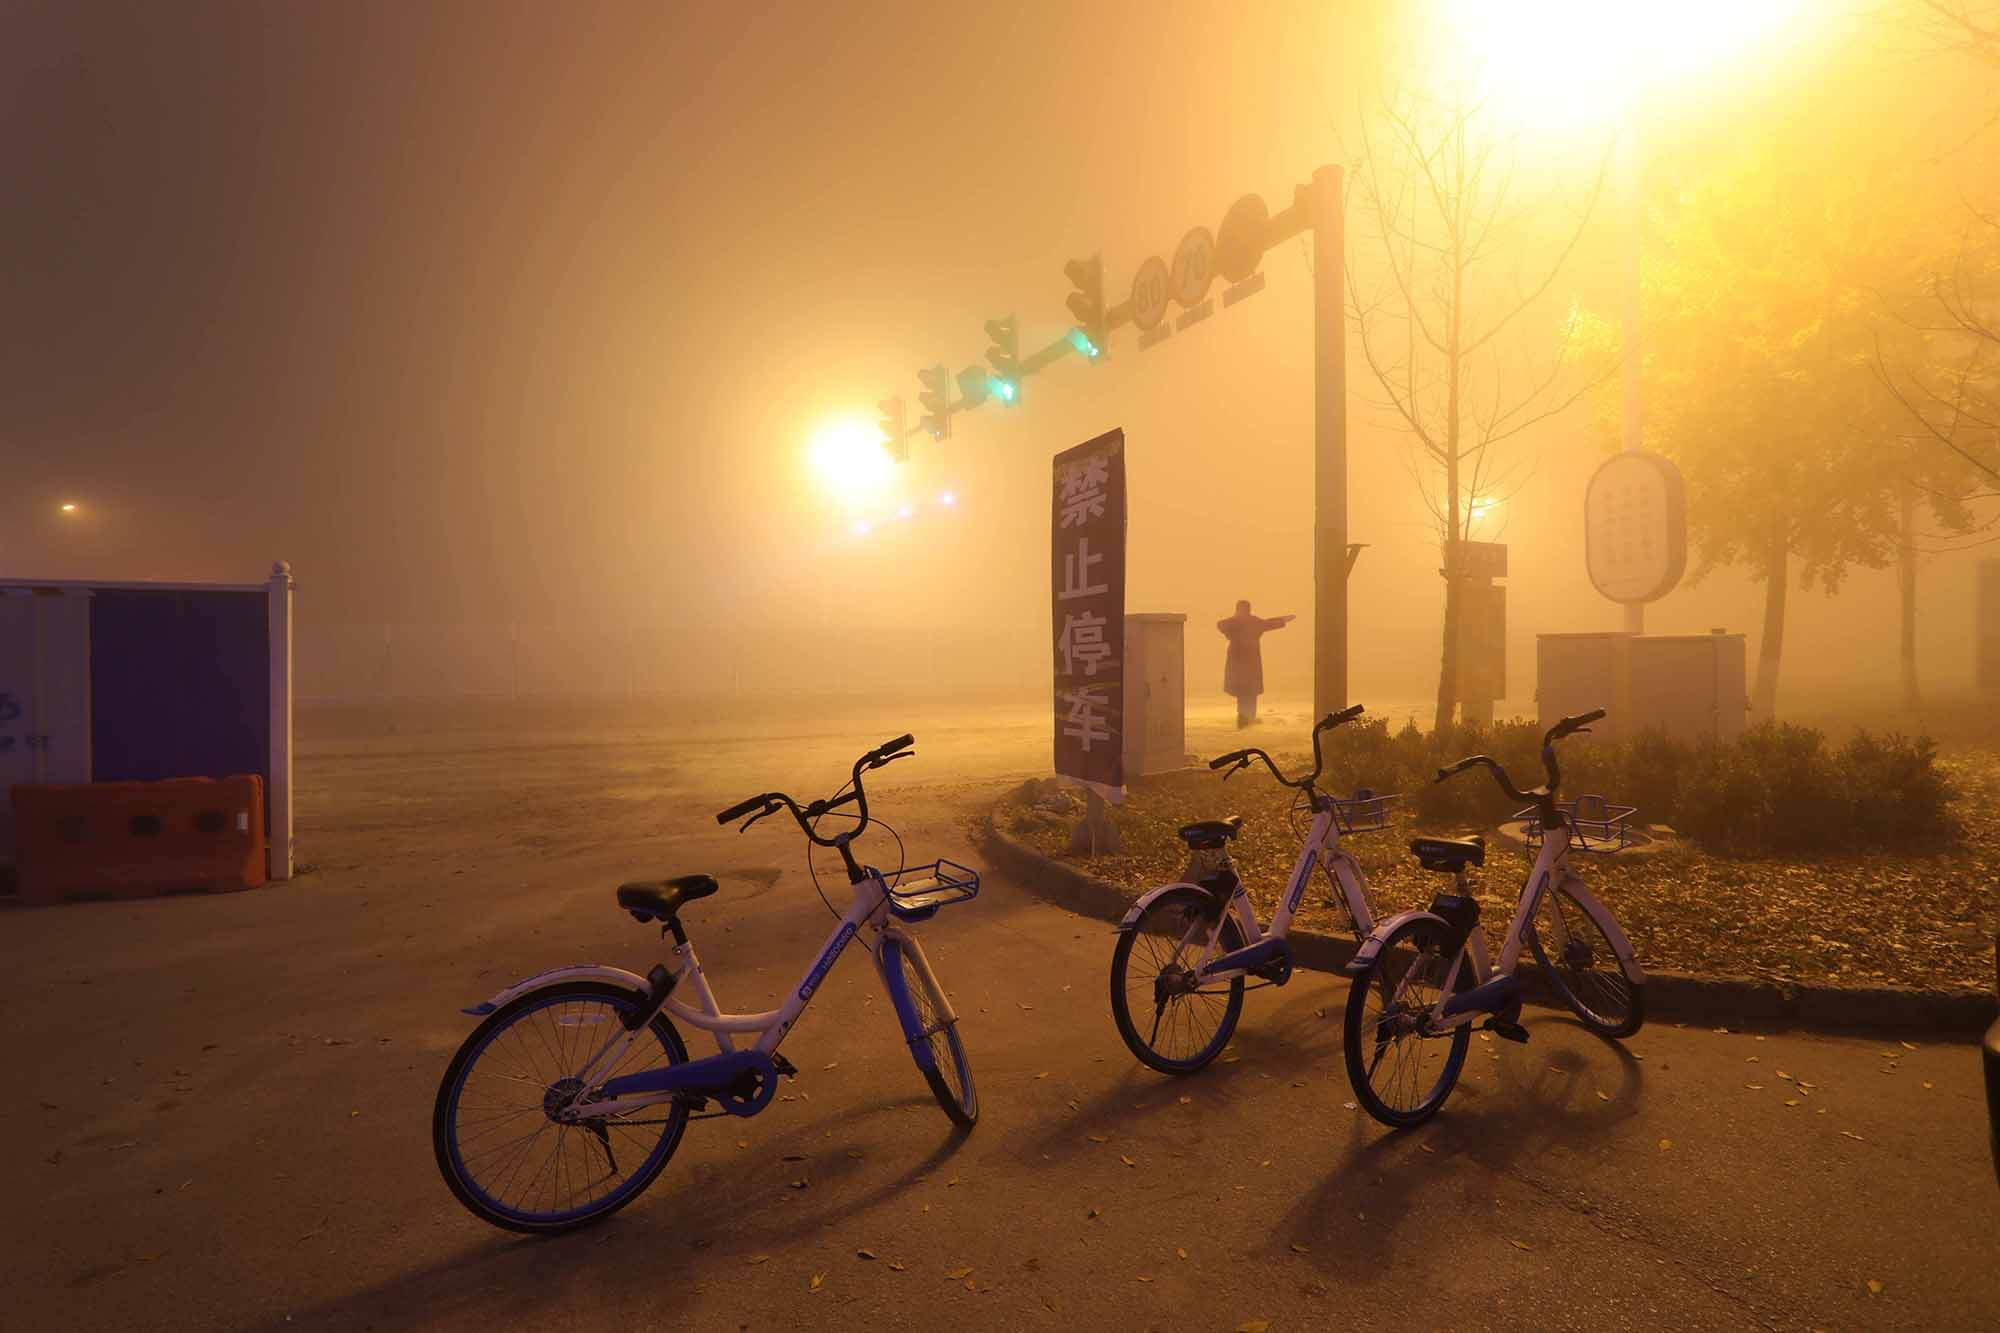 three bicycles on stands beside a set of traffic lights.